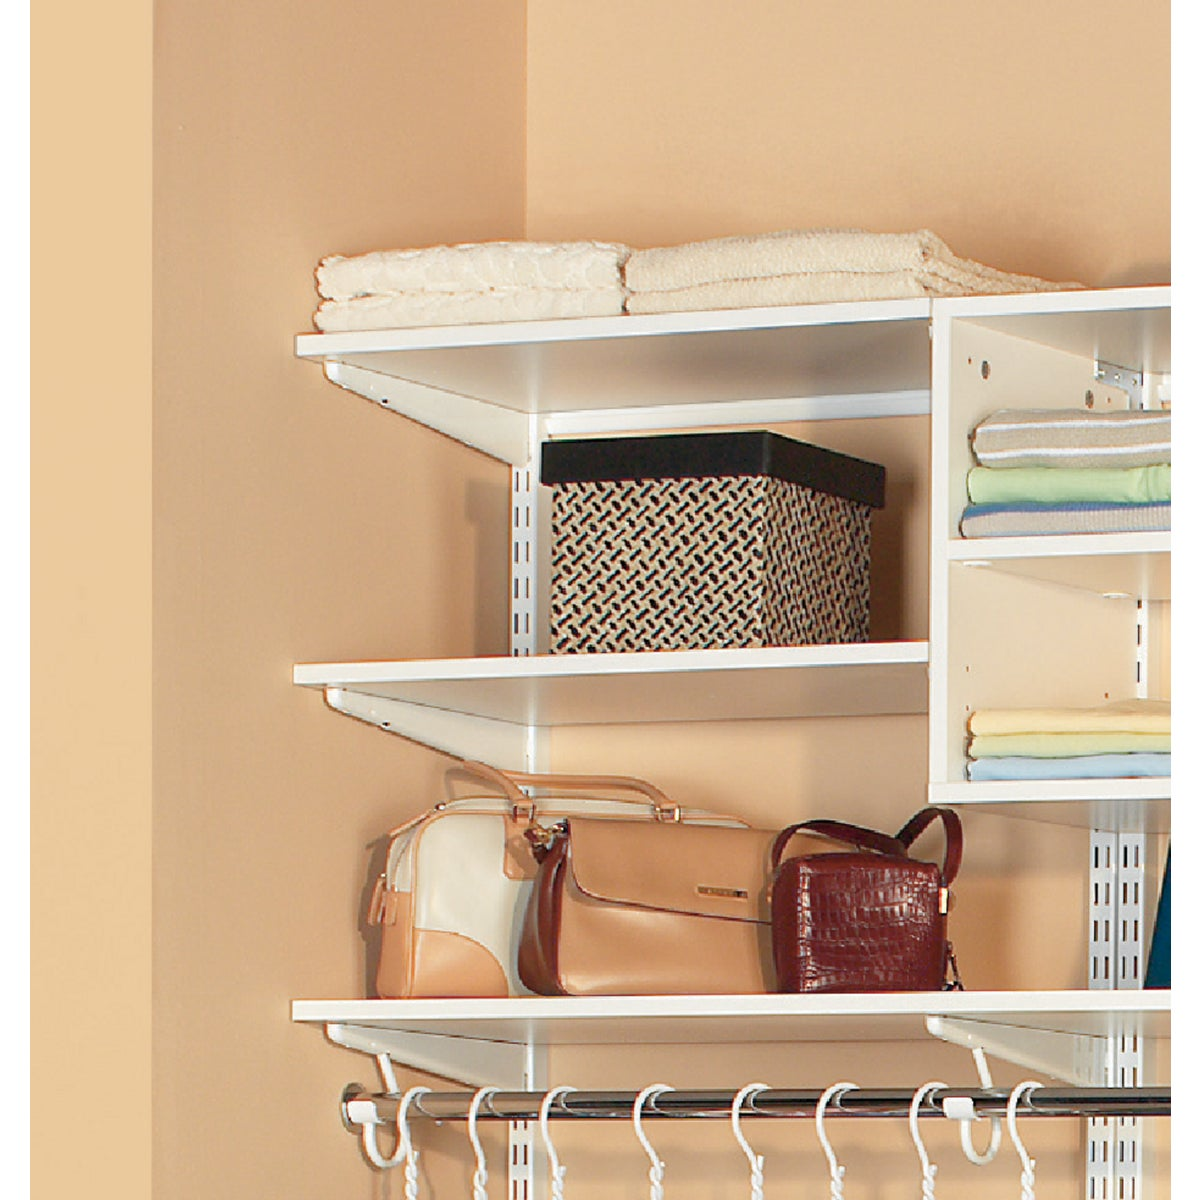 2' WHITE MELAMINE SHELF